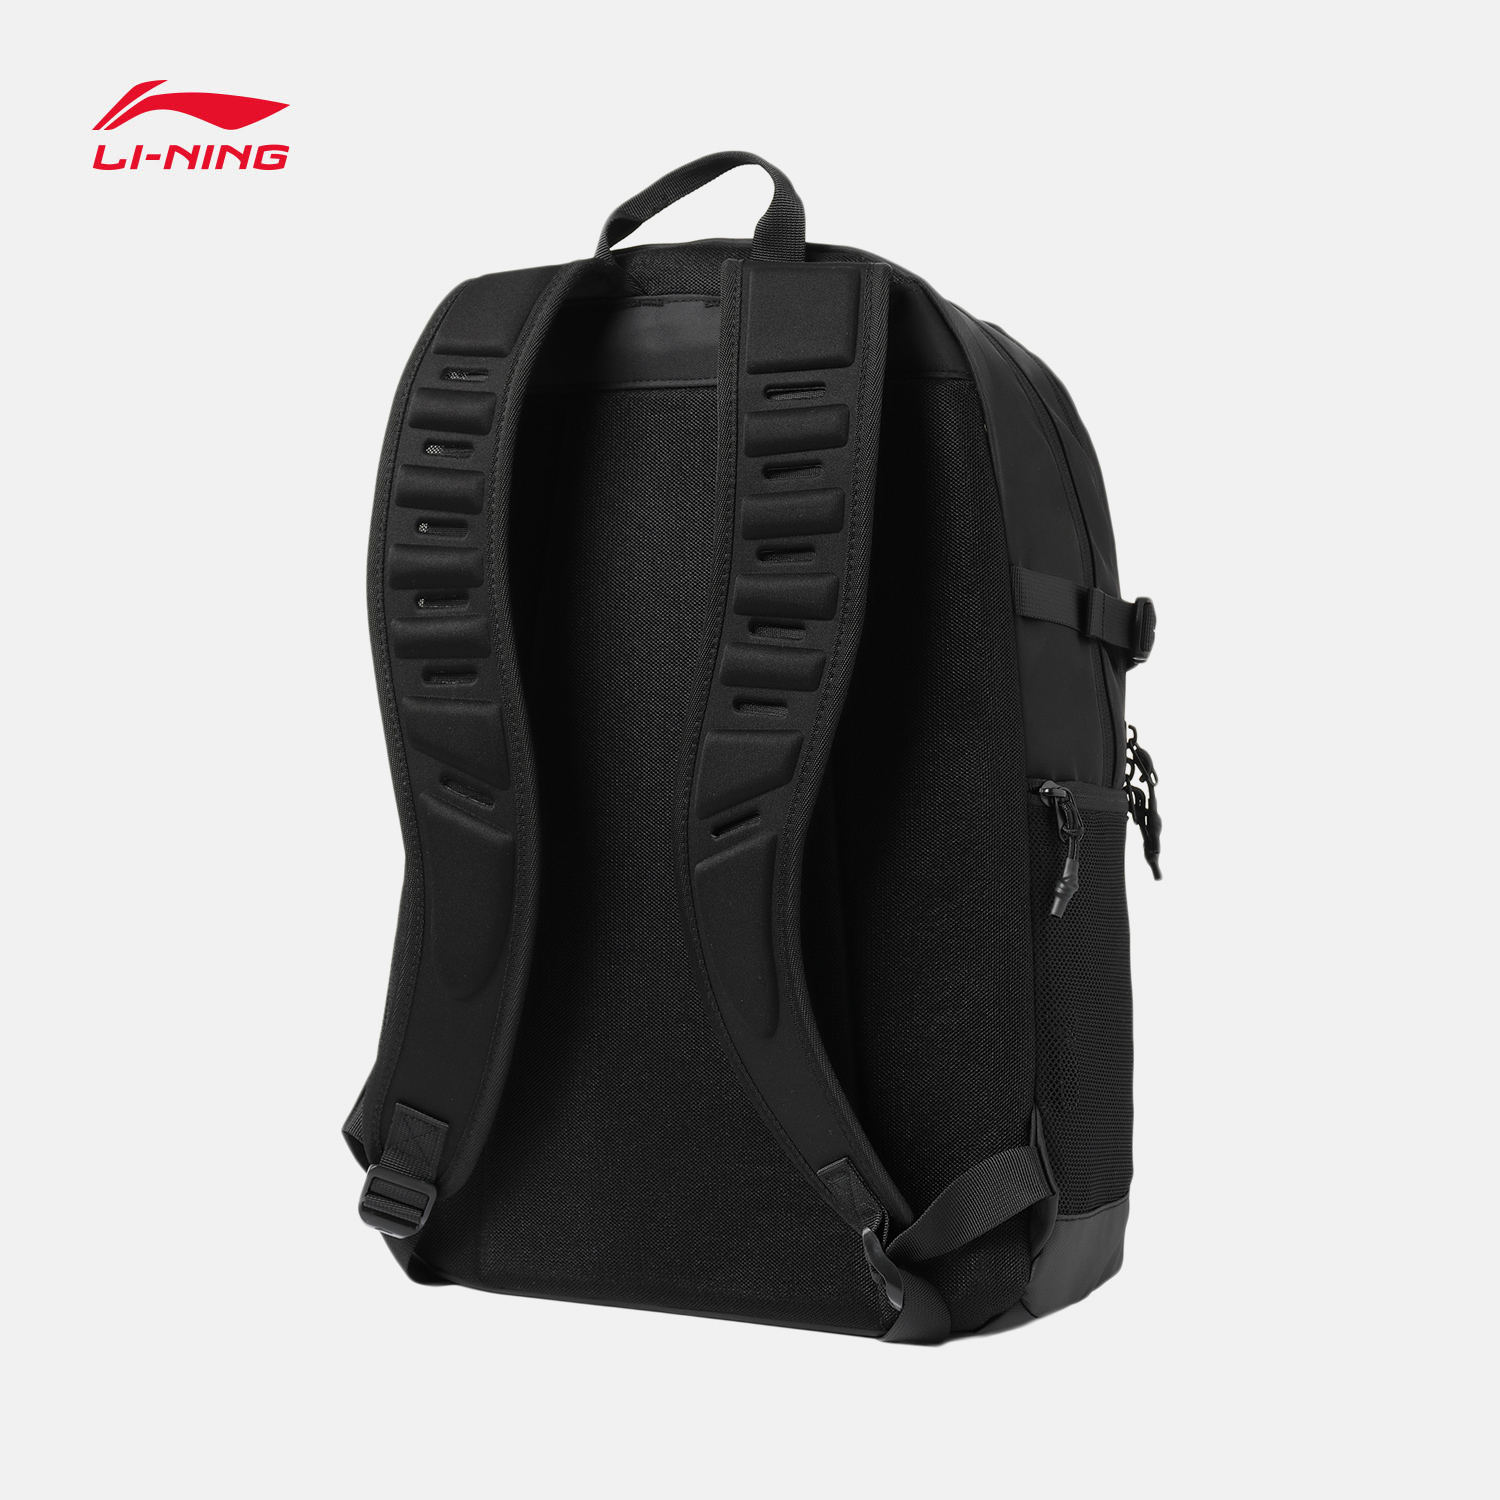 Li Ning shoulder bag men's bag female bag 2021 new training series backpack book student sports bag